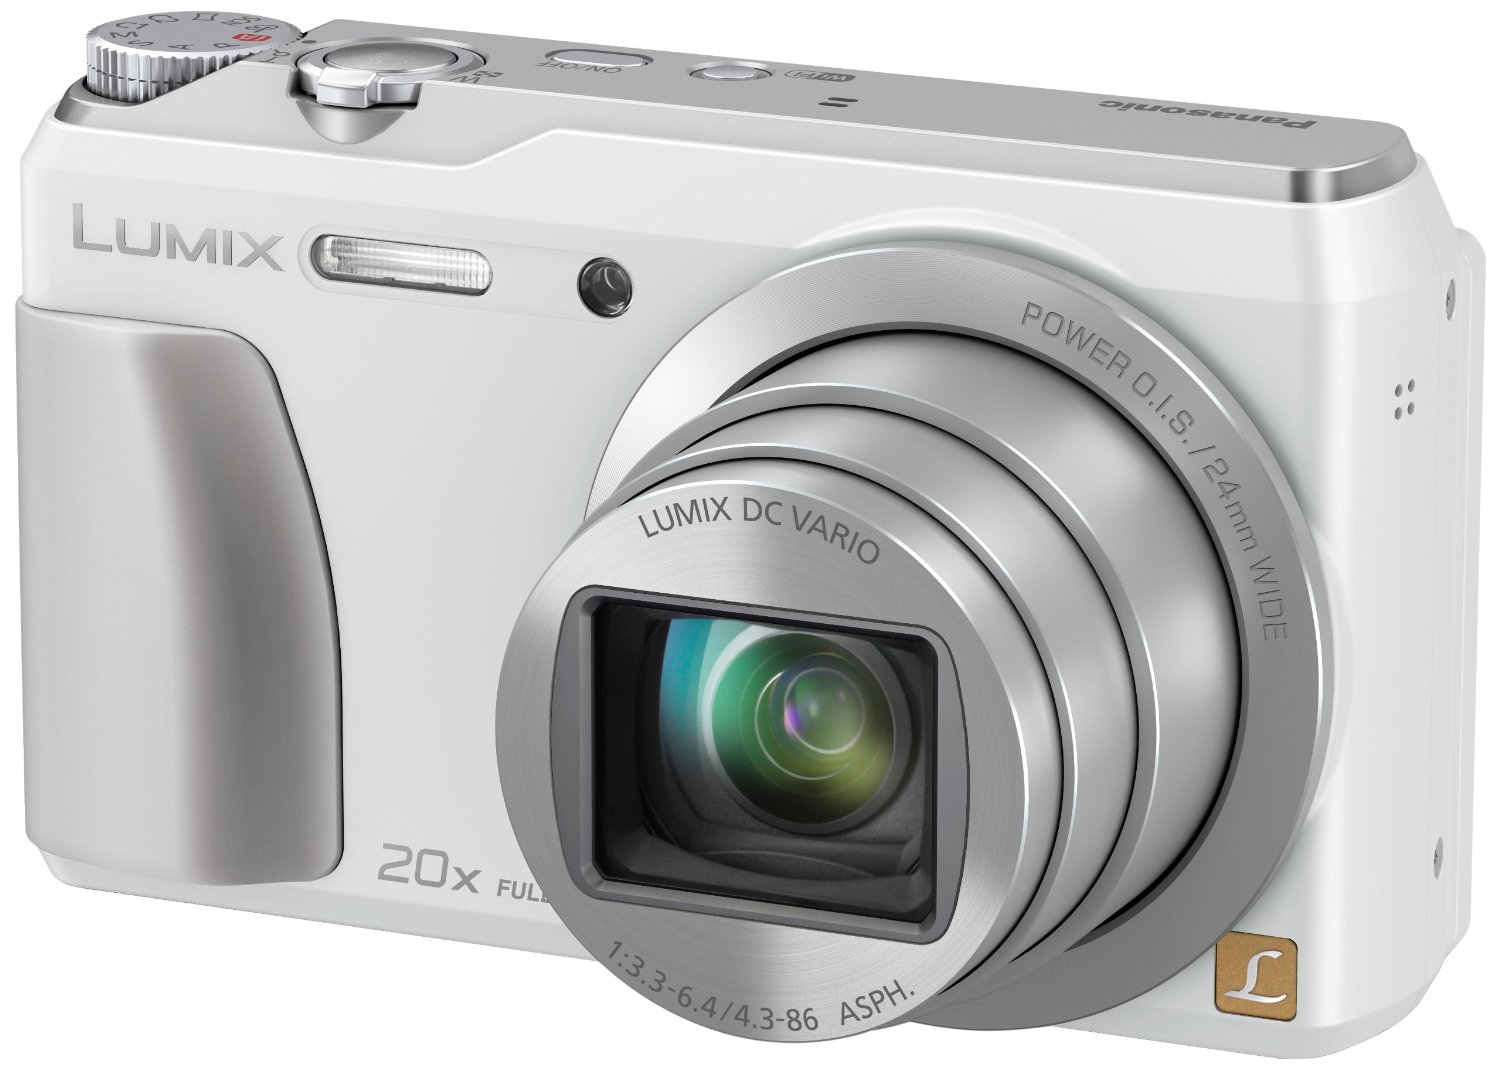 Panasonic 16.1 MP Digital Camera with 3.0-Inch TFT LCD (White)